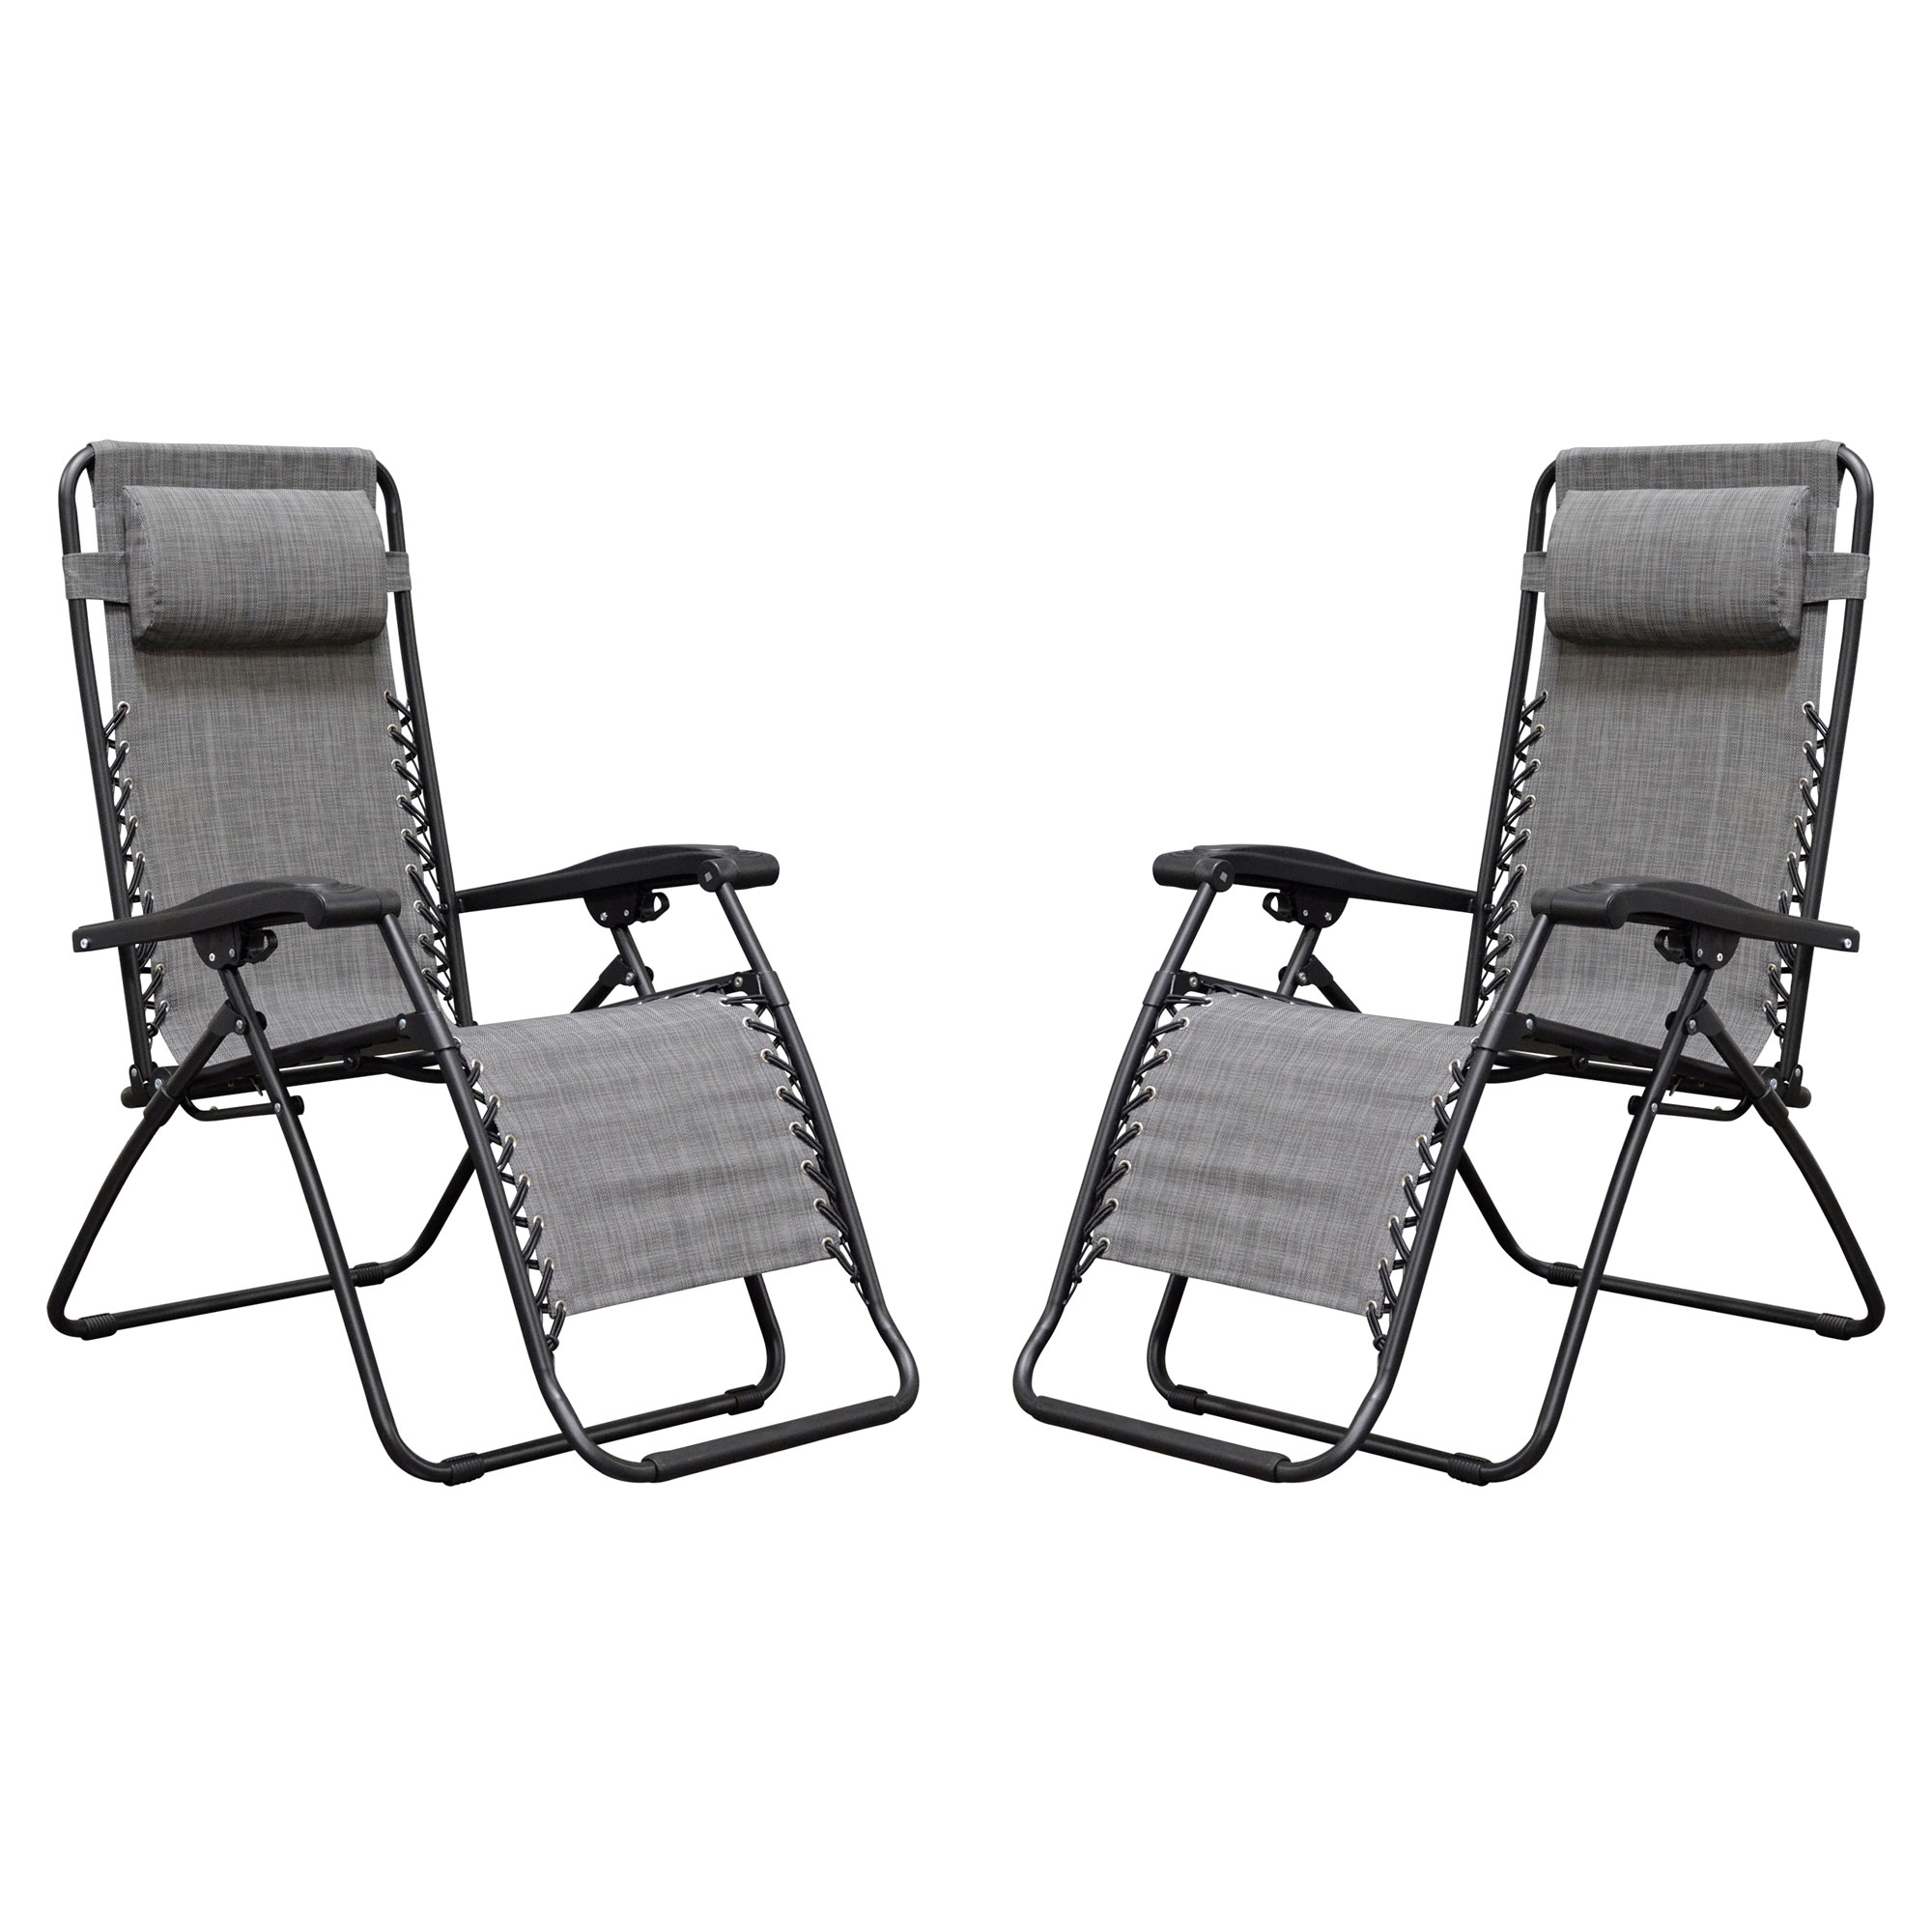 Caravan Sports Infinity Zero Gravity Chair, 2pk, Grey